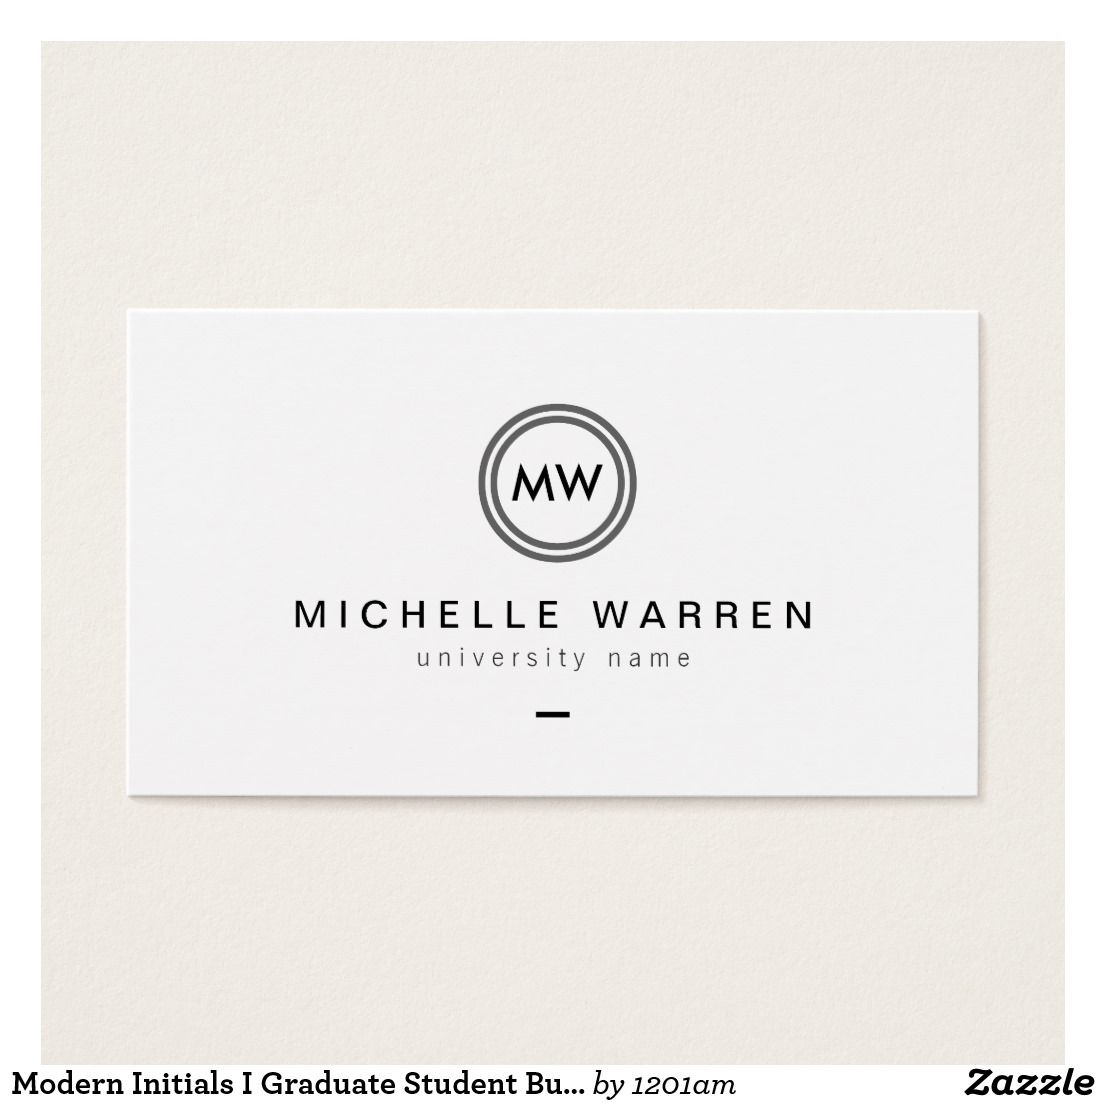 Modern Initials I Graduate Student Business Card Zazzle Com Examples Of Business Cards Student Business Cards Business Card Template